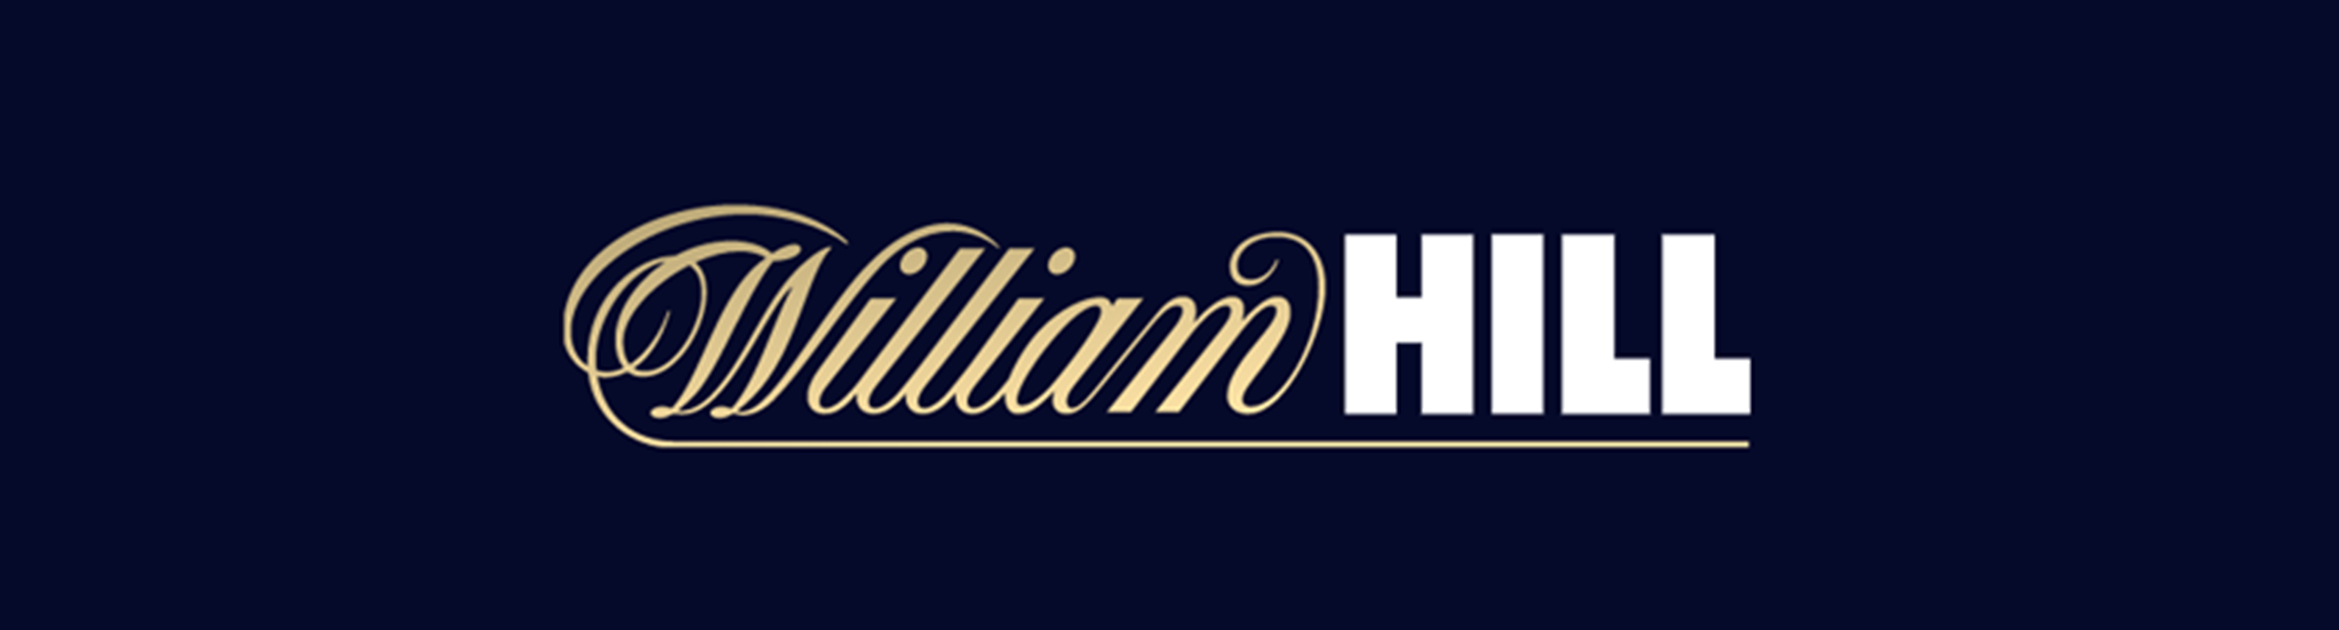 william hil